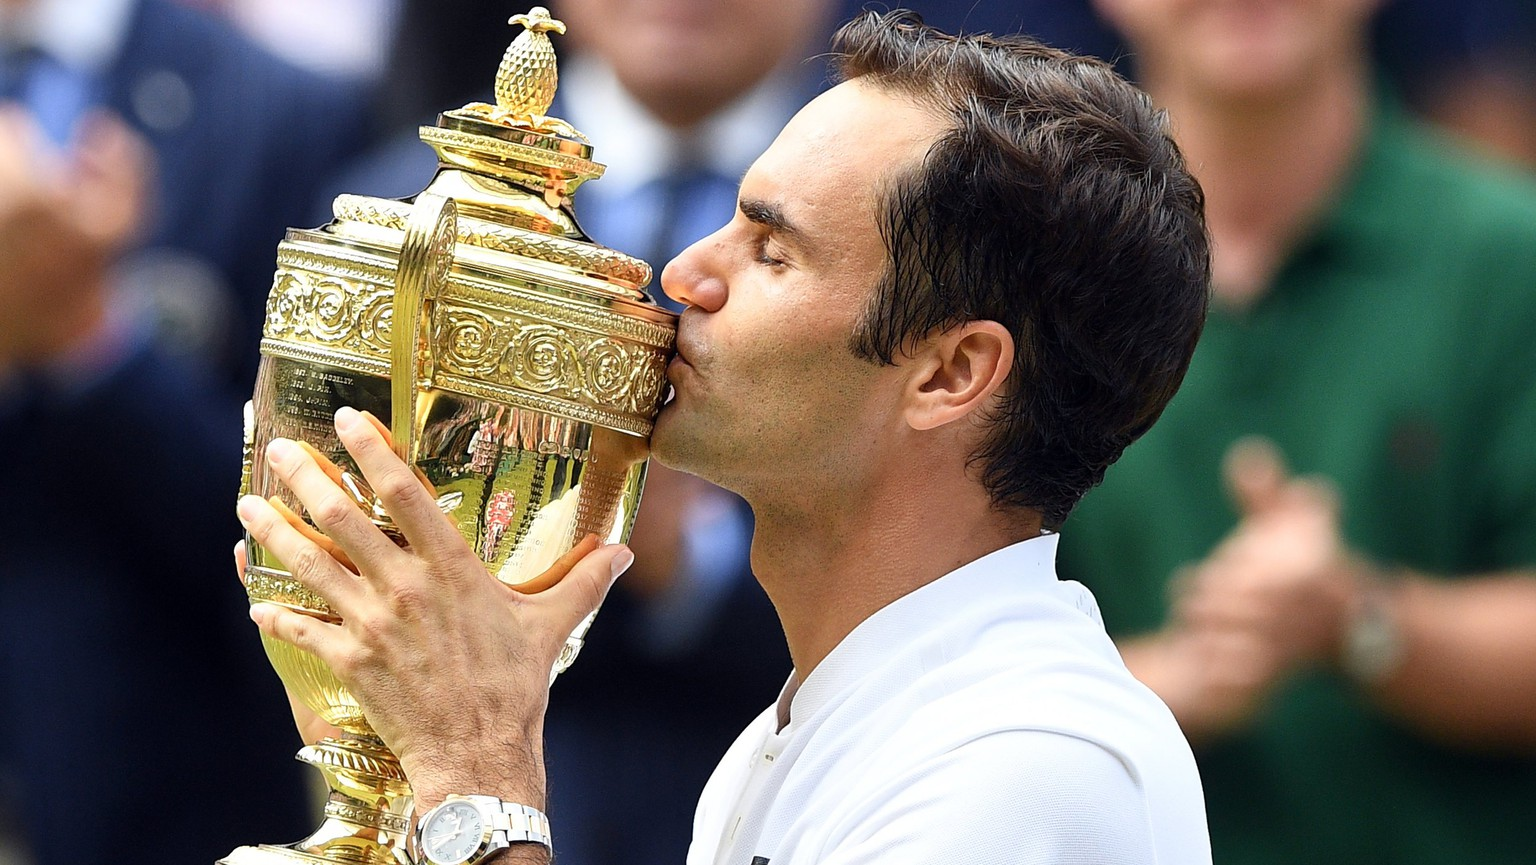 epa06091242 Roger Federer of Switzerland kisses the championship trophy following his victory over Marin Cilic of Croatia in the men's final of the Wimbledon Championships at the All England Lawn Tennis Club, in London, Britain, 16 July 2017.  EPA/FACUNDO ARRIZABALAGA EDITORIAL USE ONLY/NO COMMERCIAL SALES